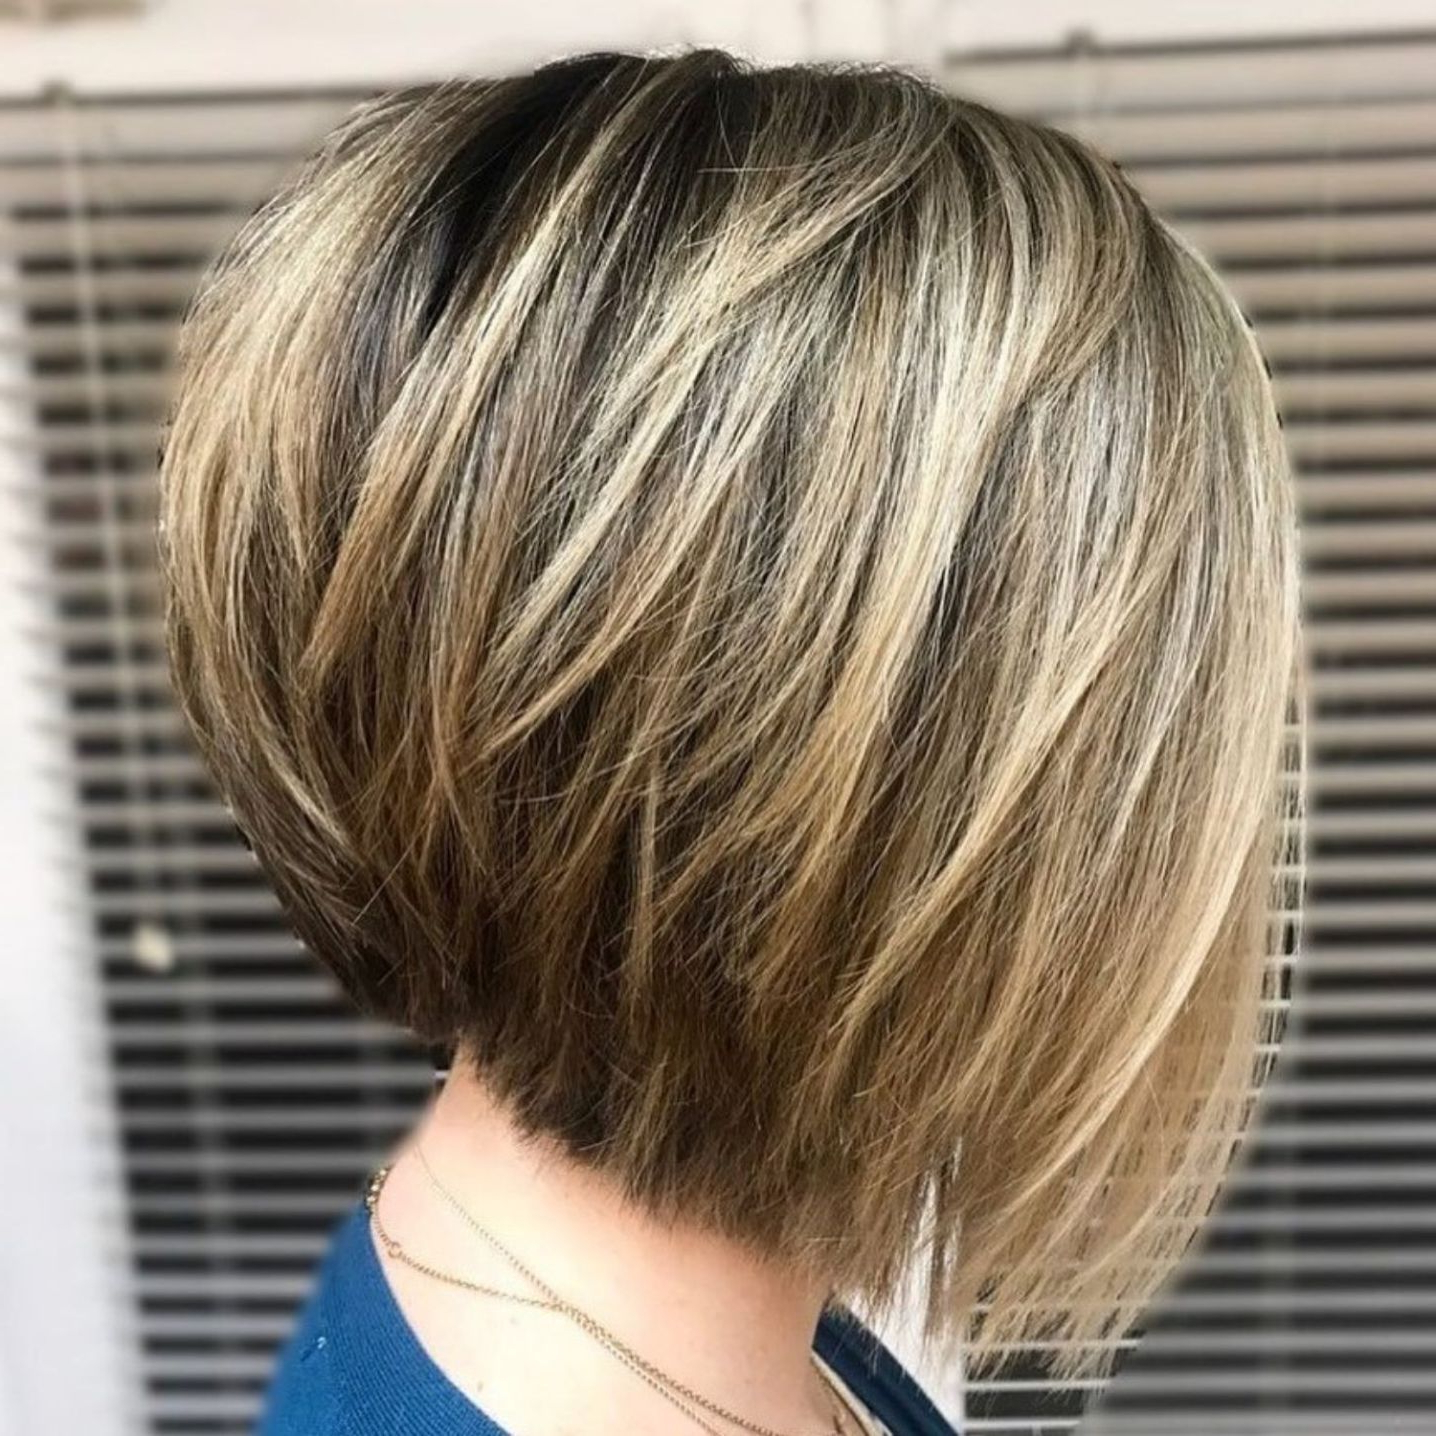 60 Layered Bob Styles: Modern Haircuts With Layers For Any Occasion Regarding Short Red Haircuts With Wispy Layers (View 11 of 20)